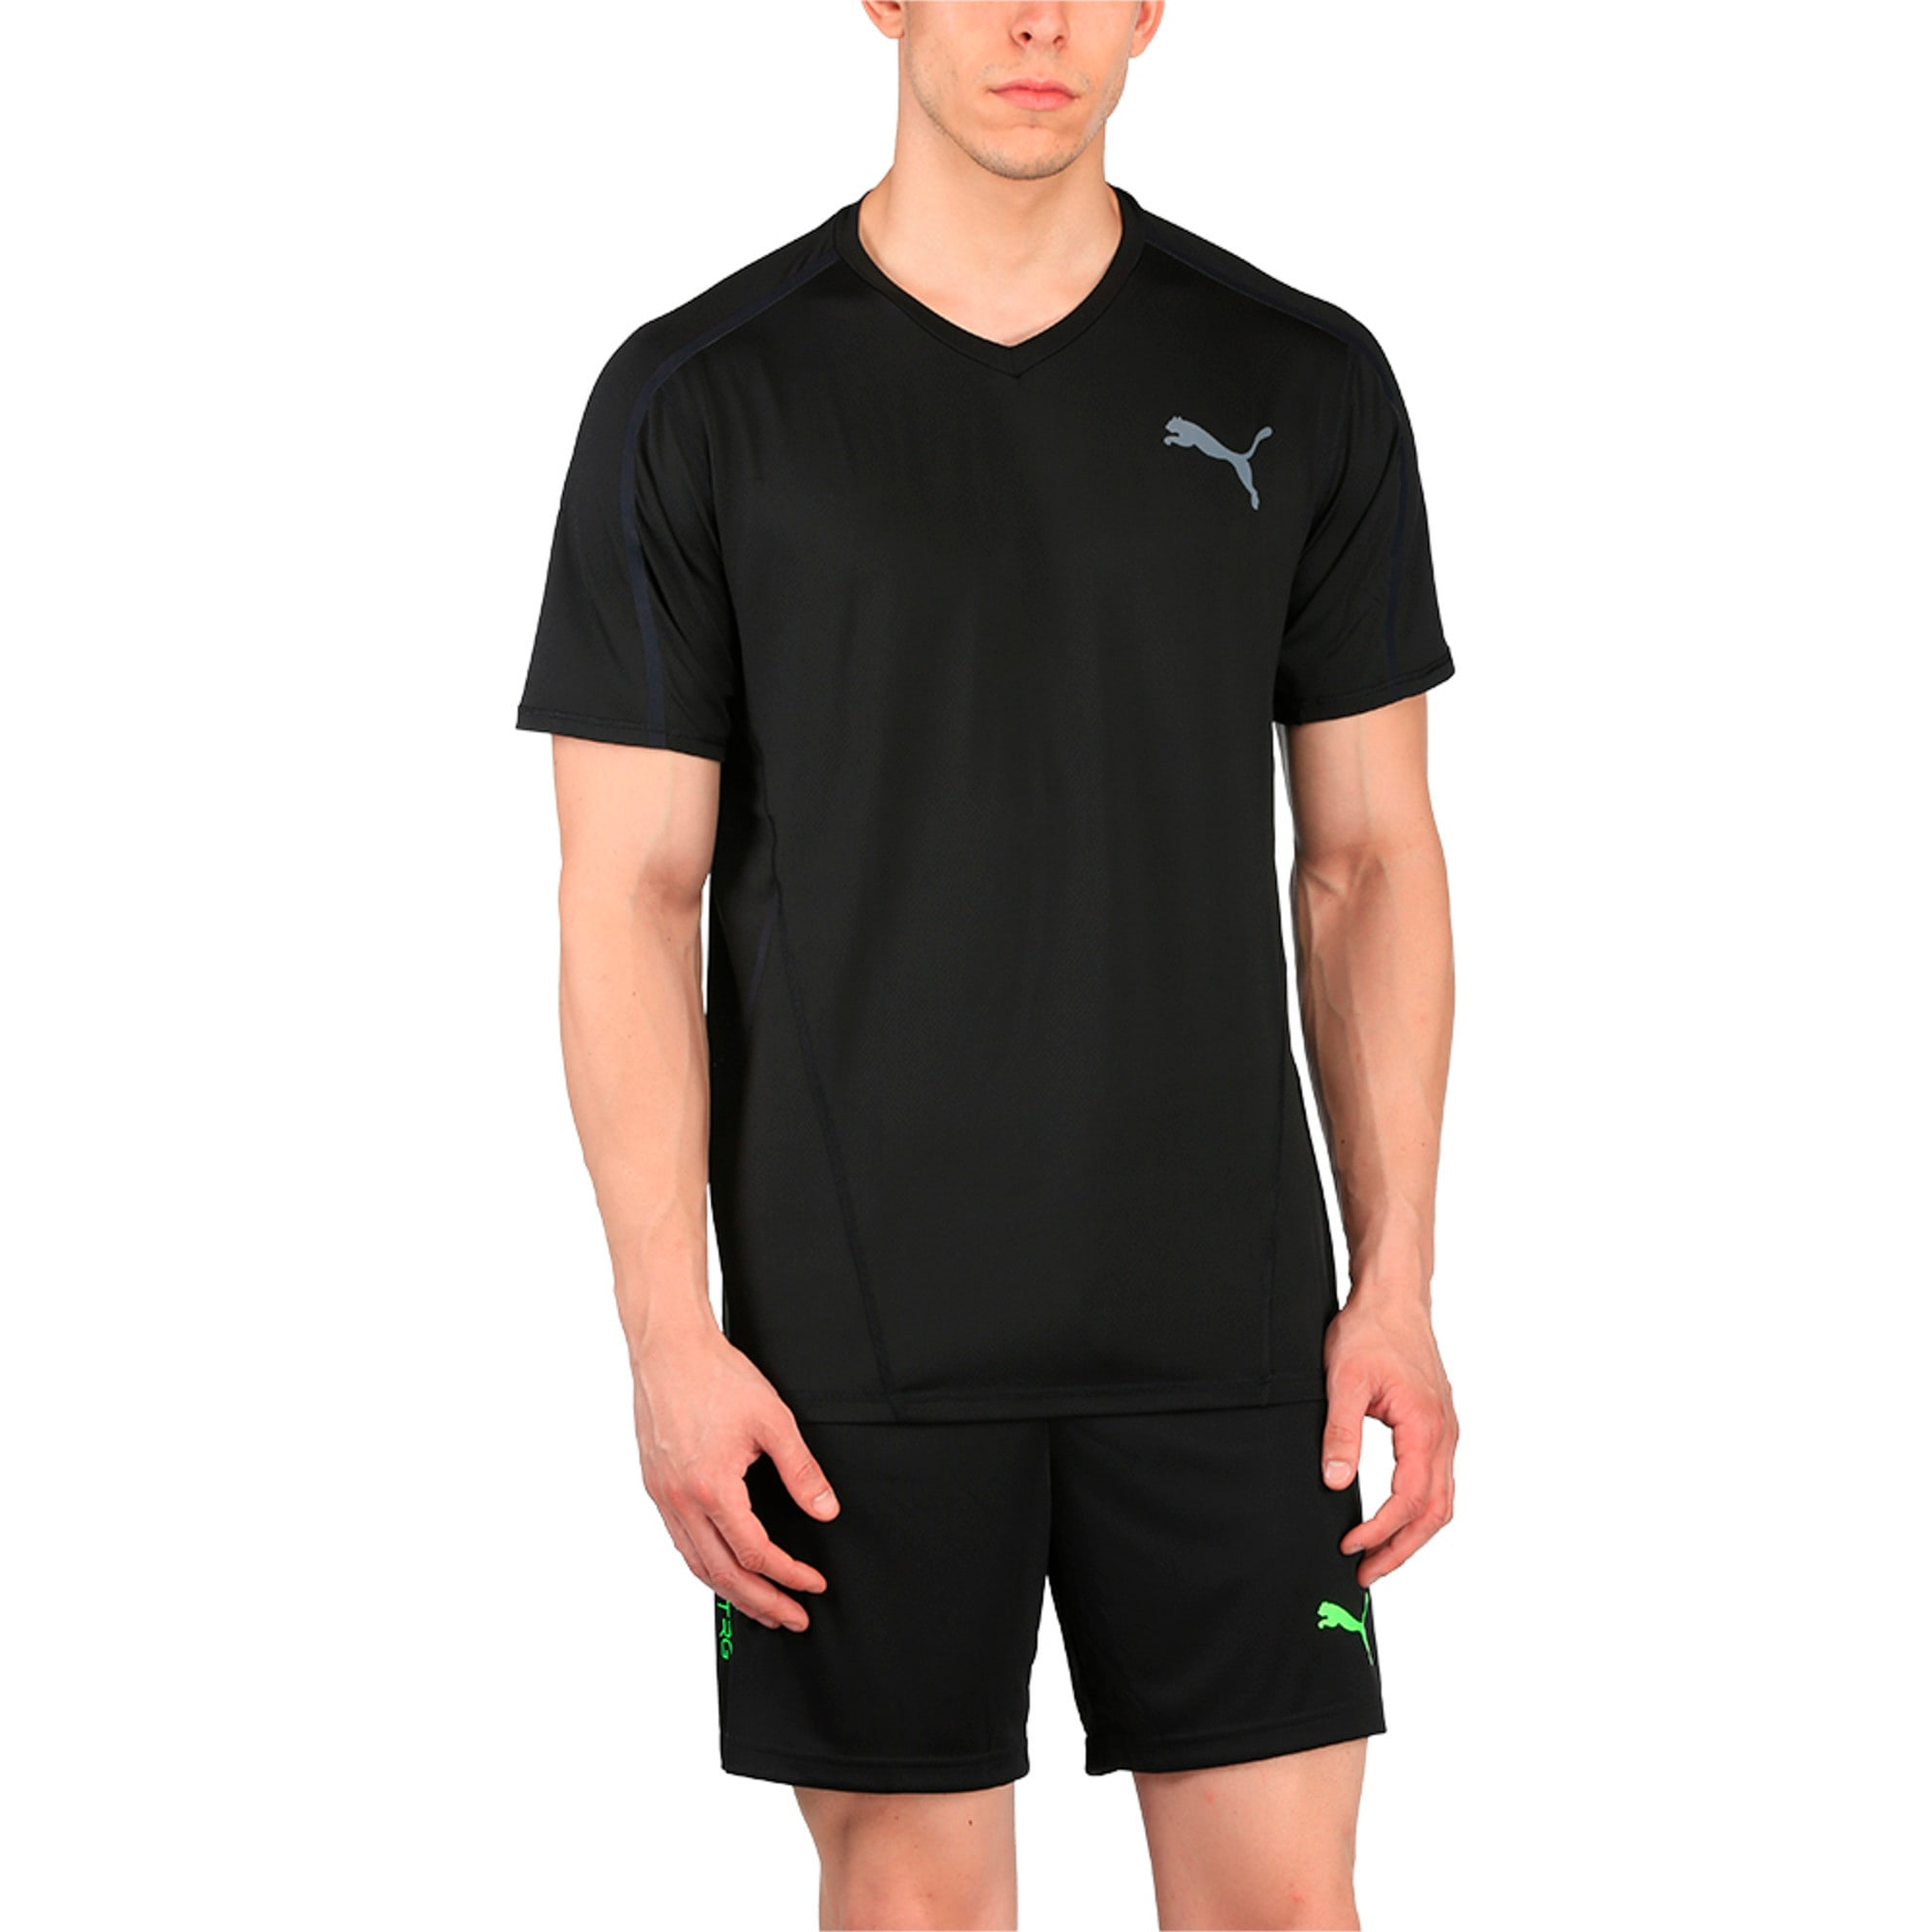 Thumbnail 2 of Active Training Men's Power T-Shirt, Puma Black, medium-IND